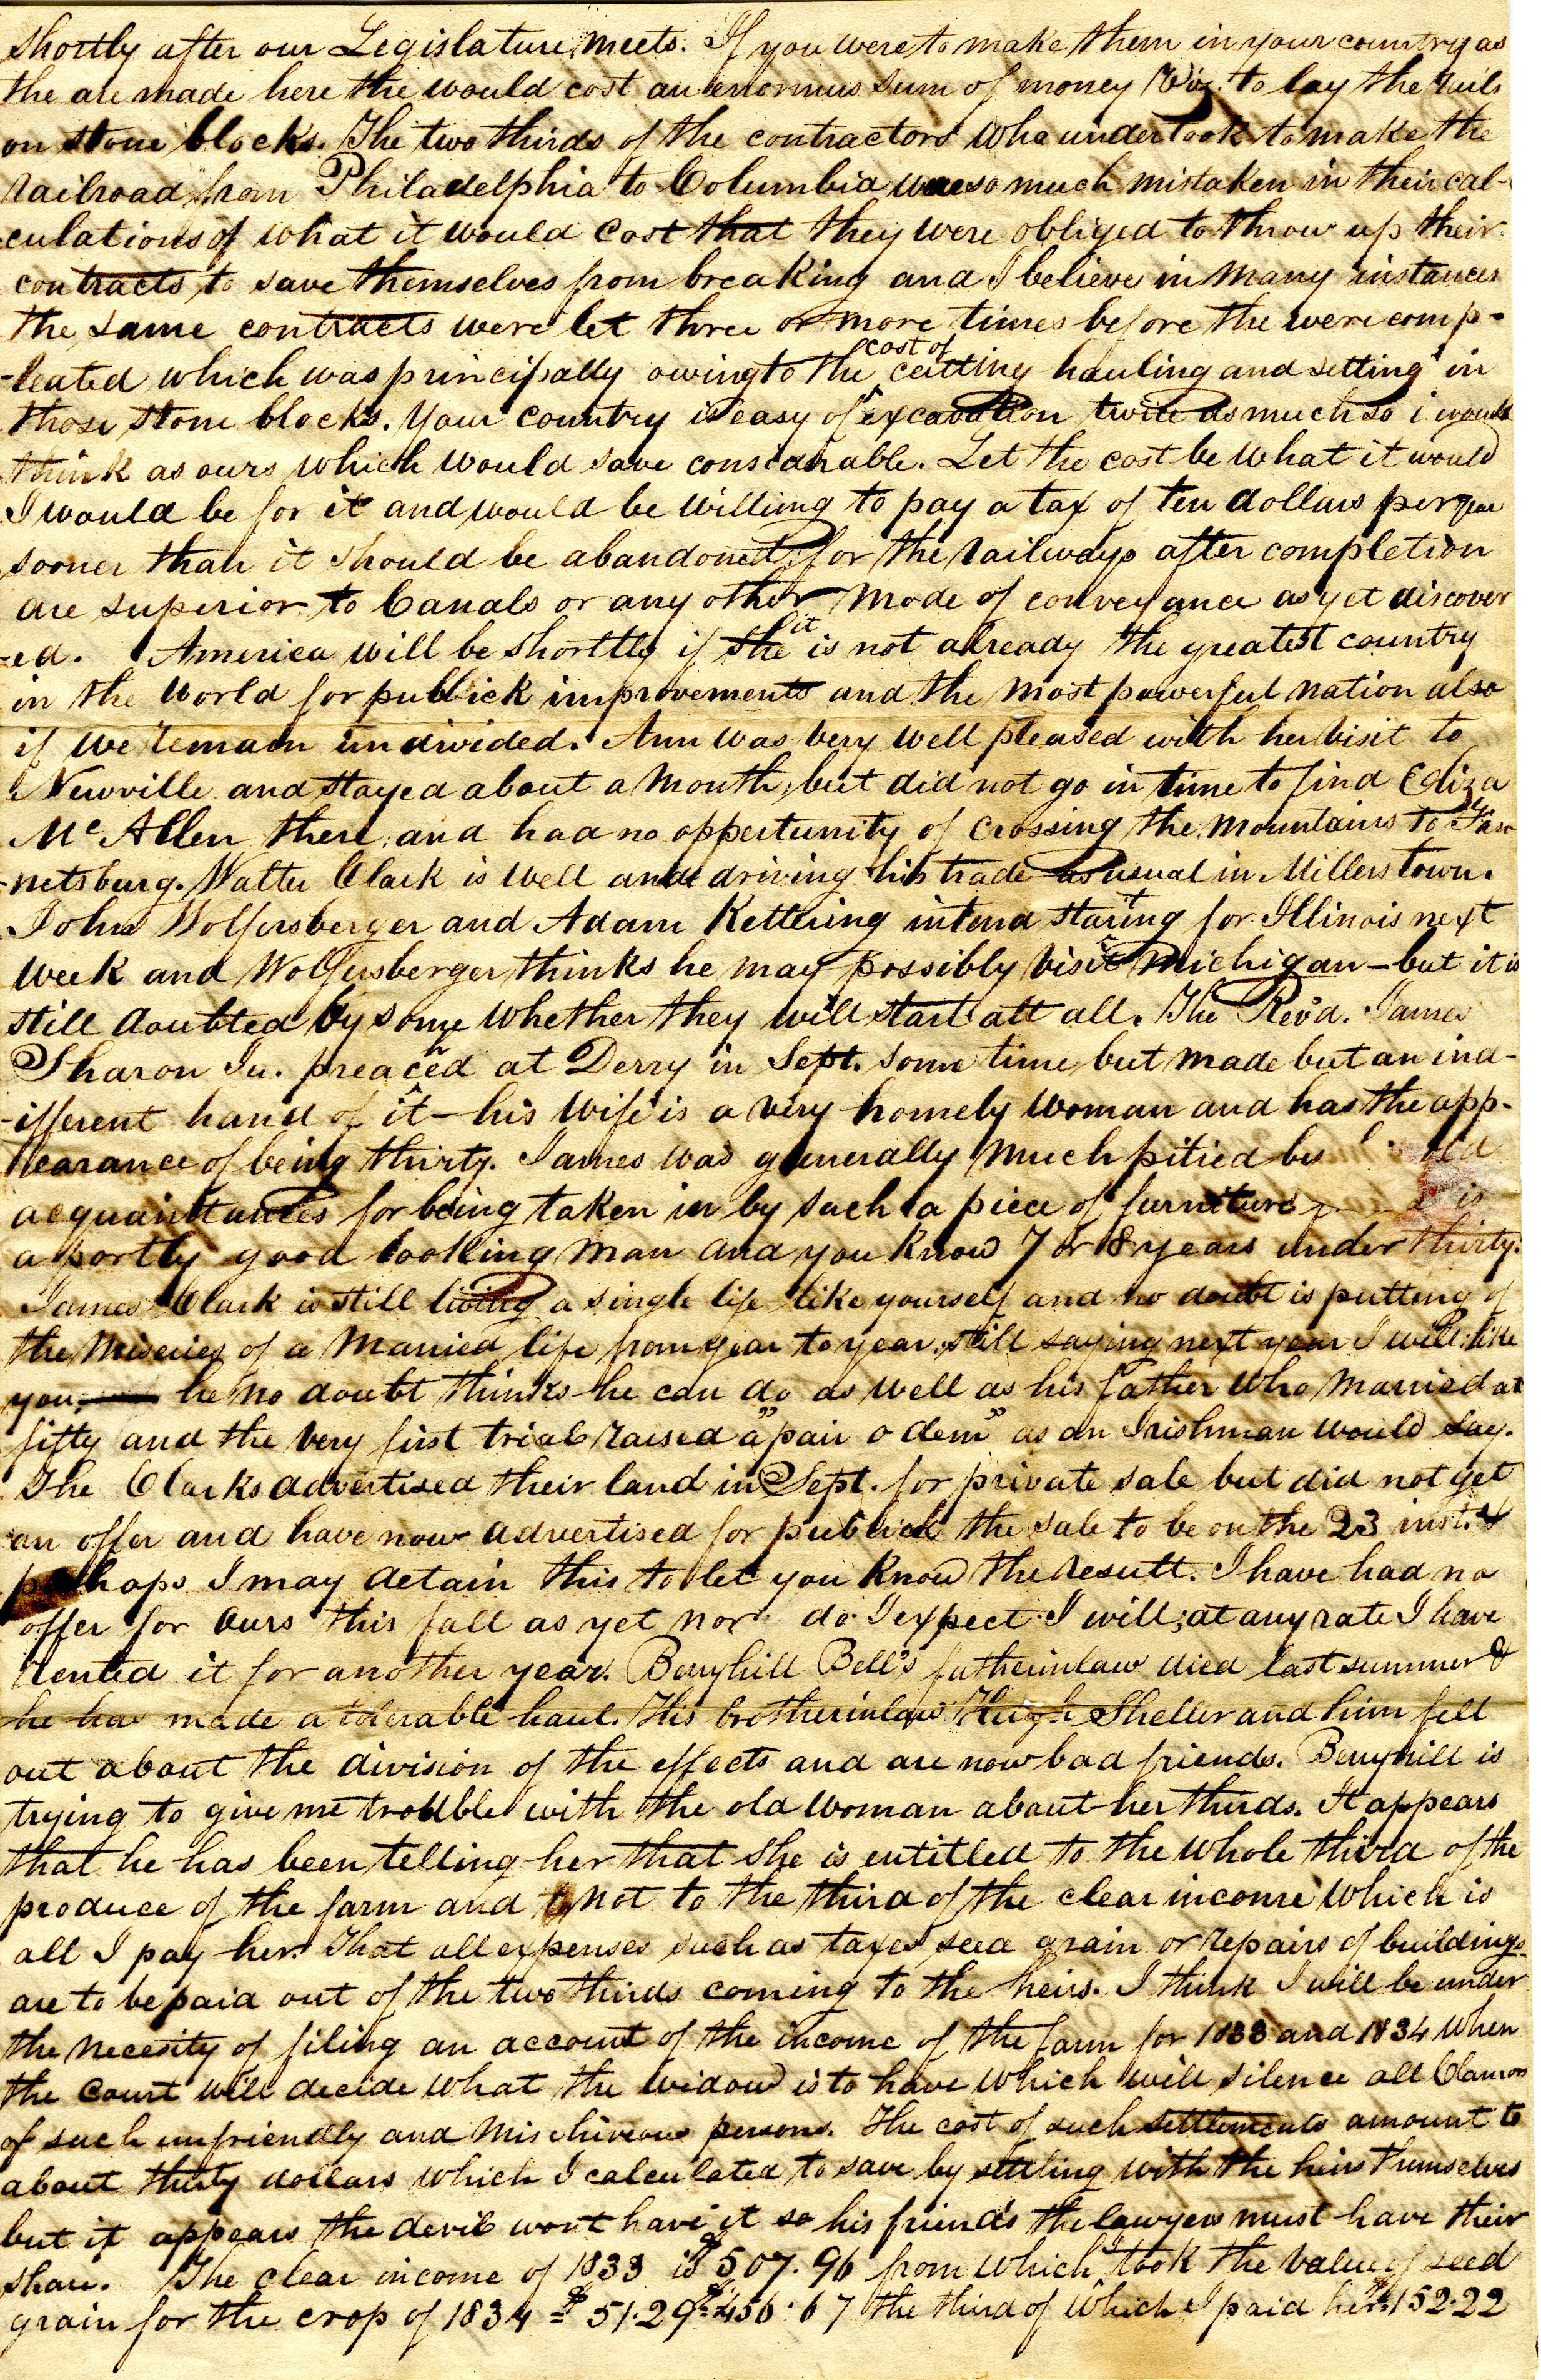 Letter From William Geddes to John Geddes, October 21, 1834 image